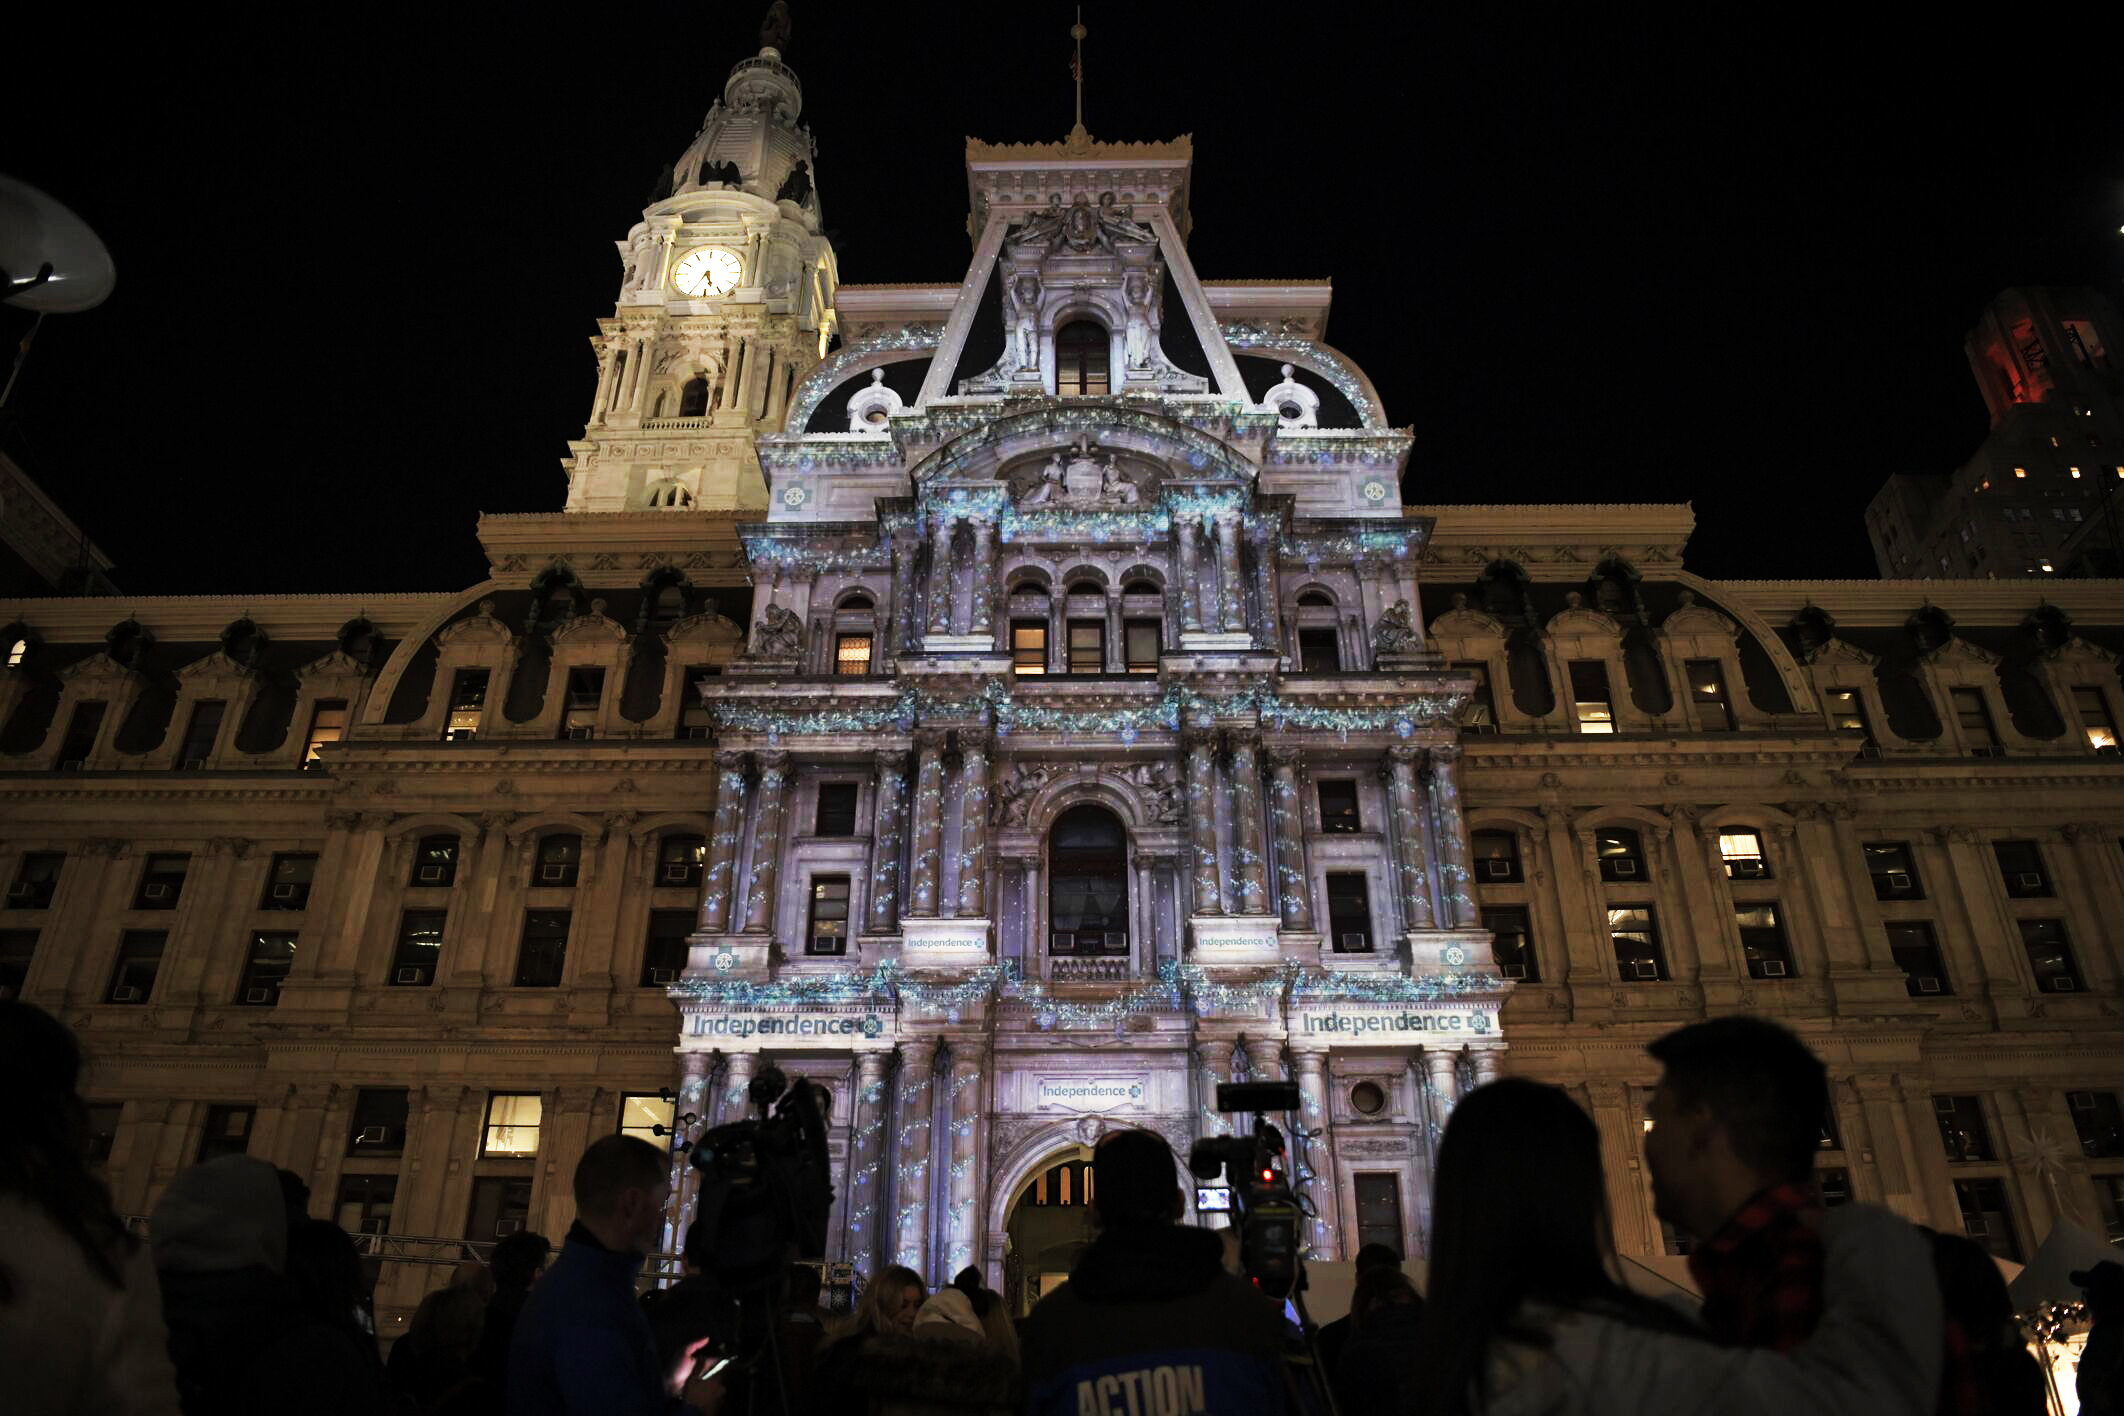 Philadelphia's City Hall at Dilworth Park decked out with festive lighting for the Deck the Hall light show, sponsored by Independence Blue Cross